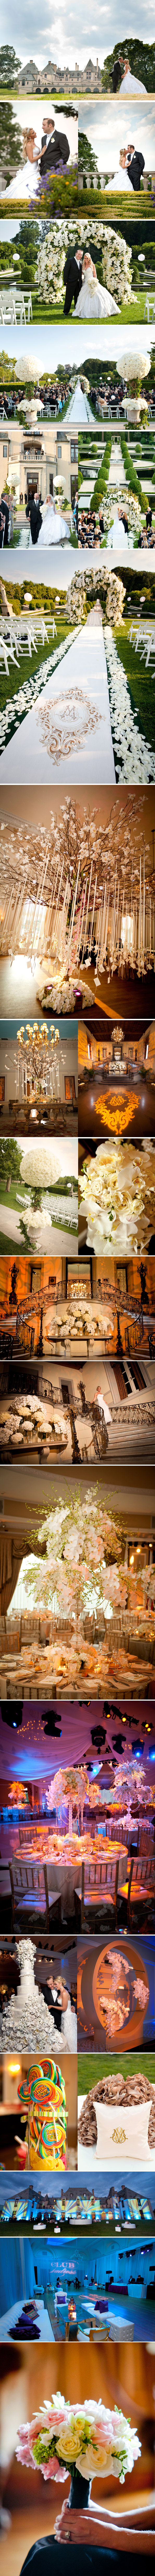 Wedding at the Oheka Castle